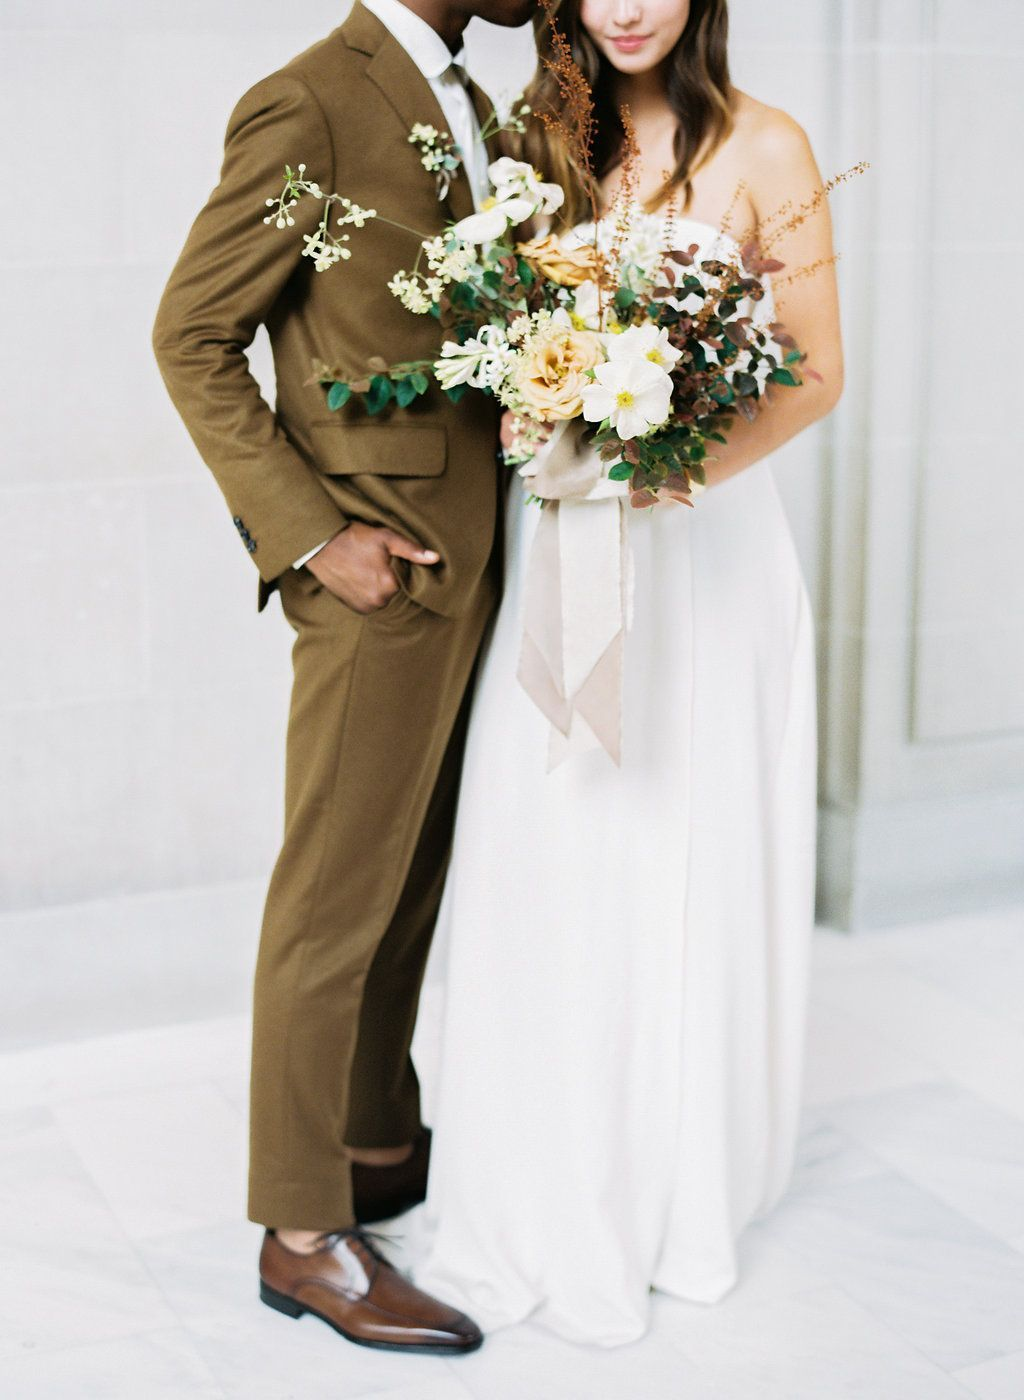 A Modern Fall Wedding with Minimalistic Style